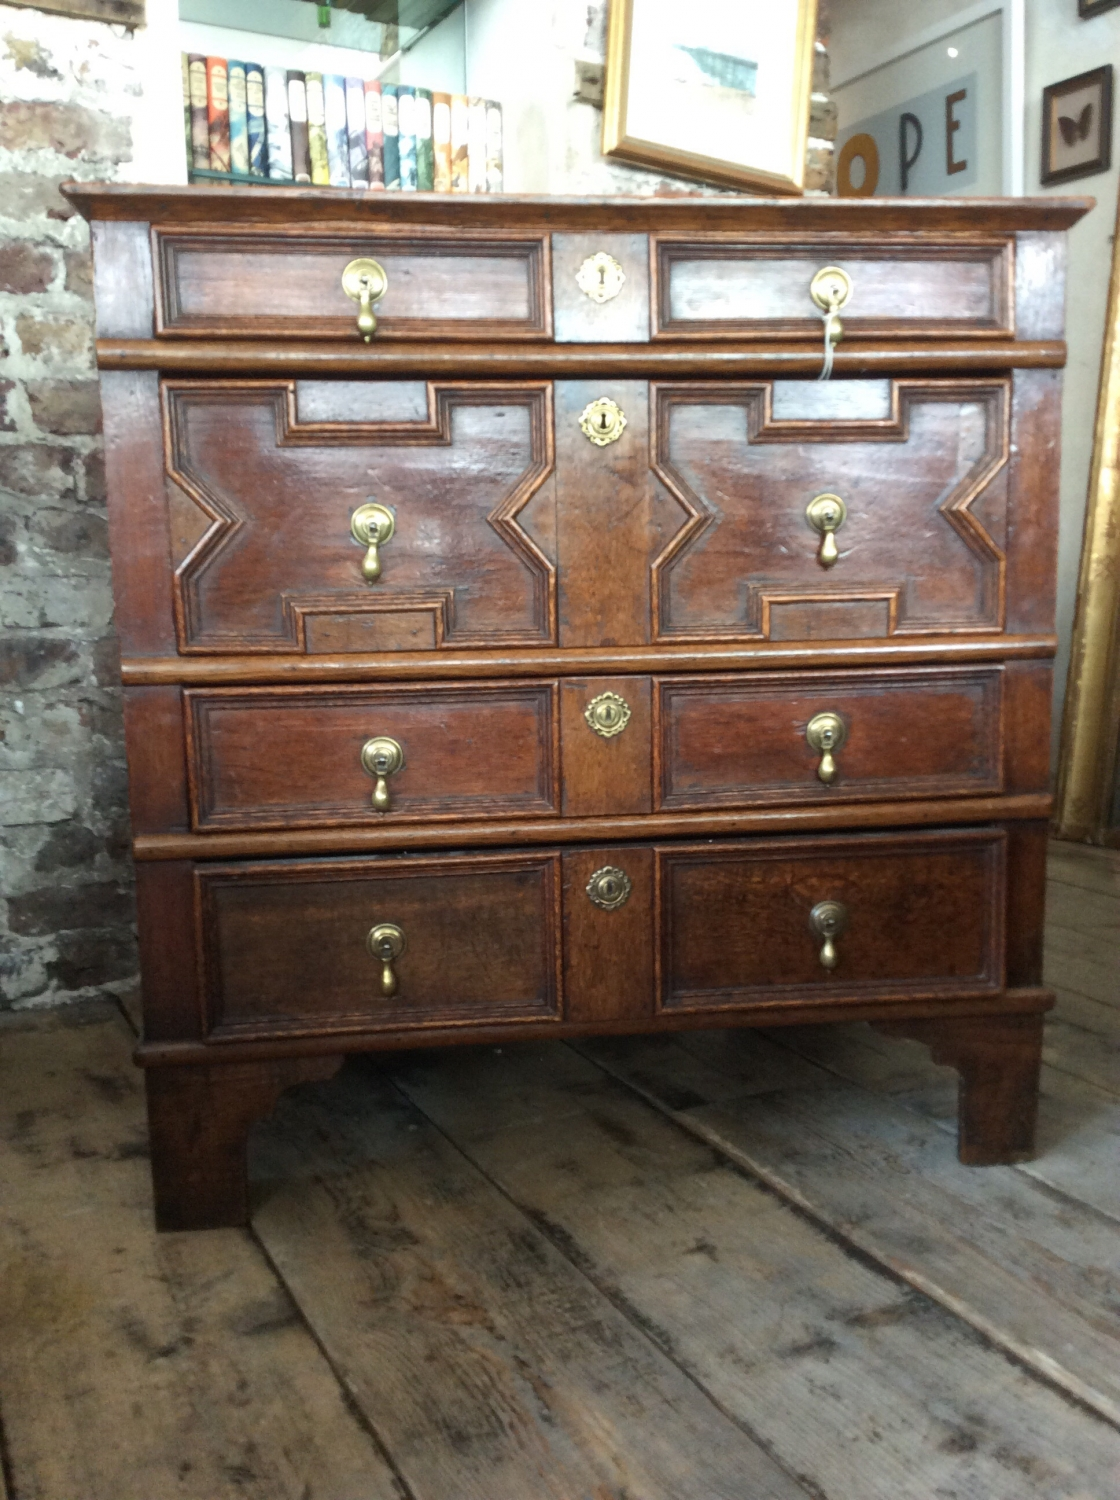 James II Oak Chest of Drawers